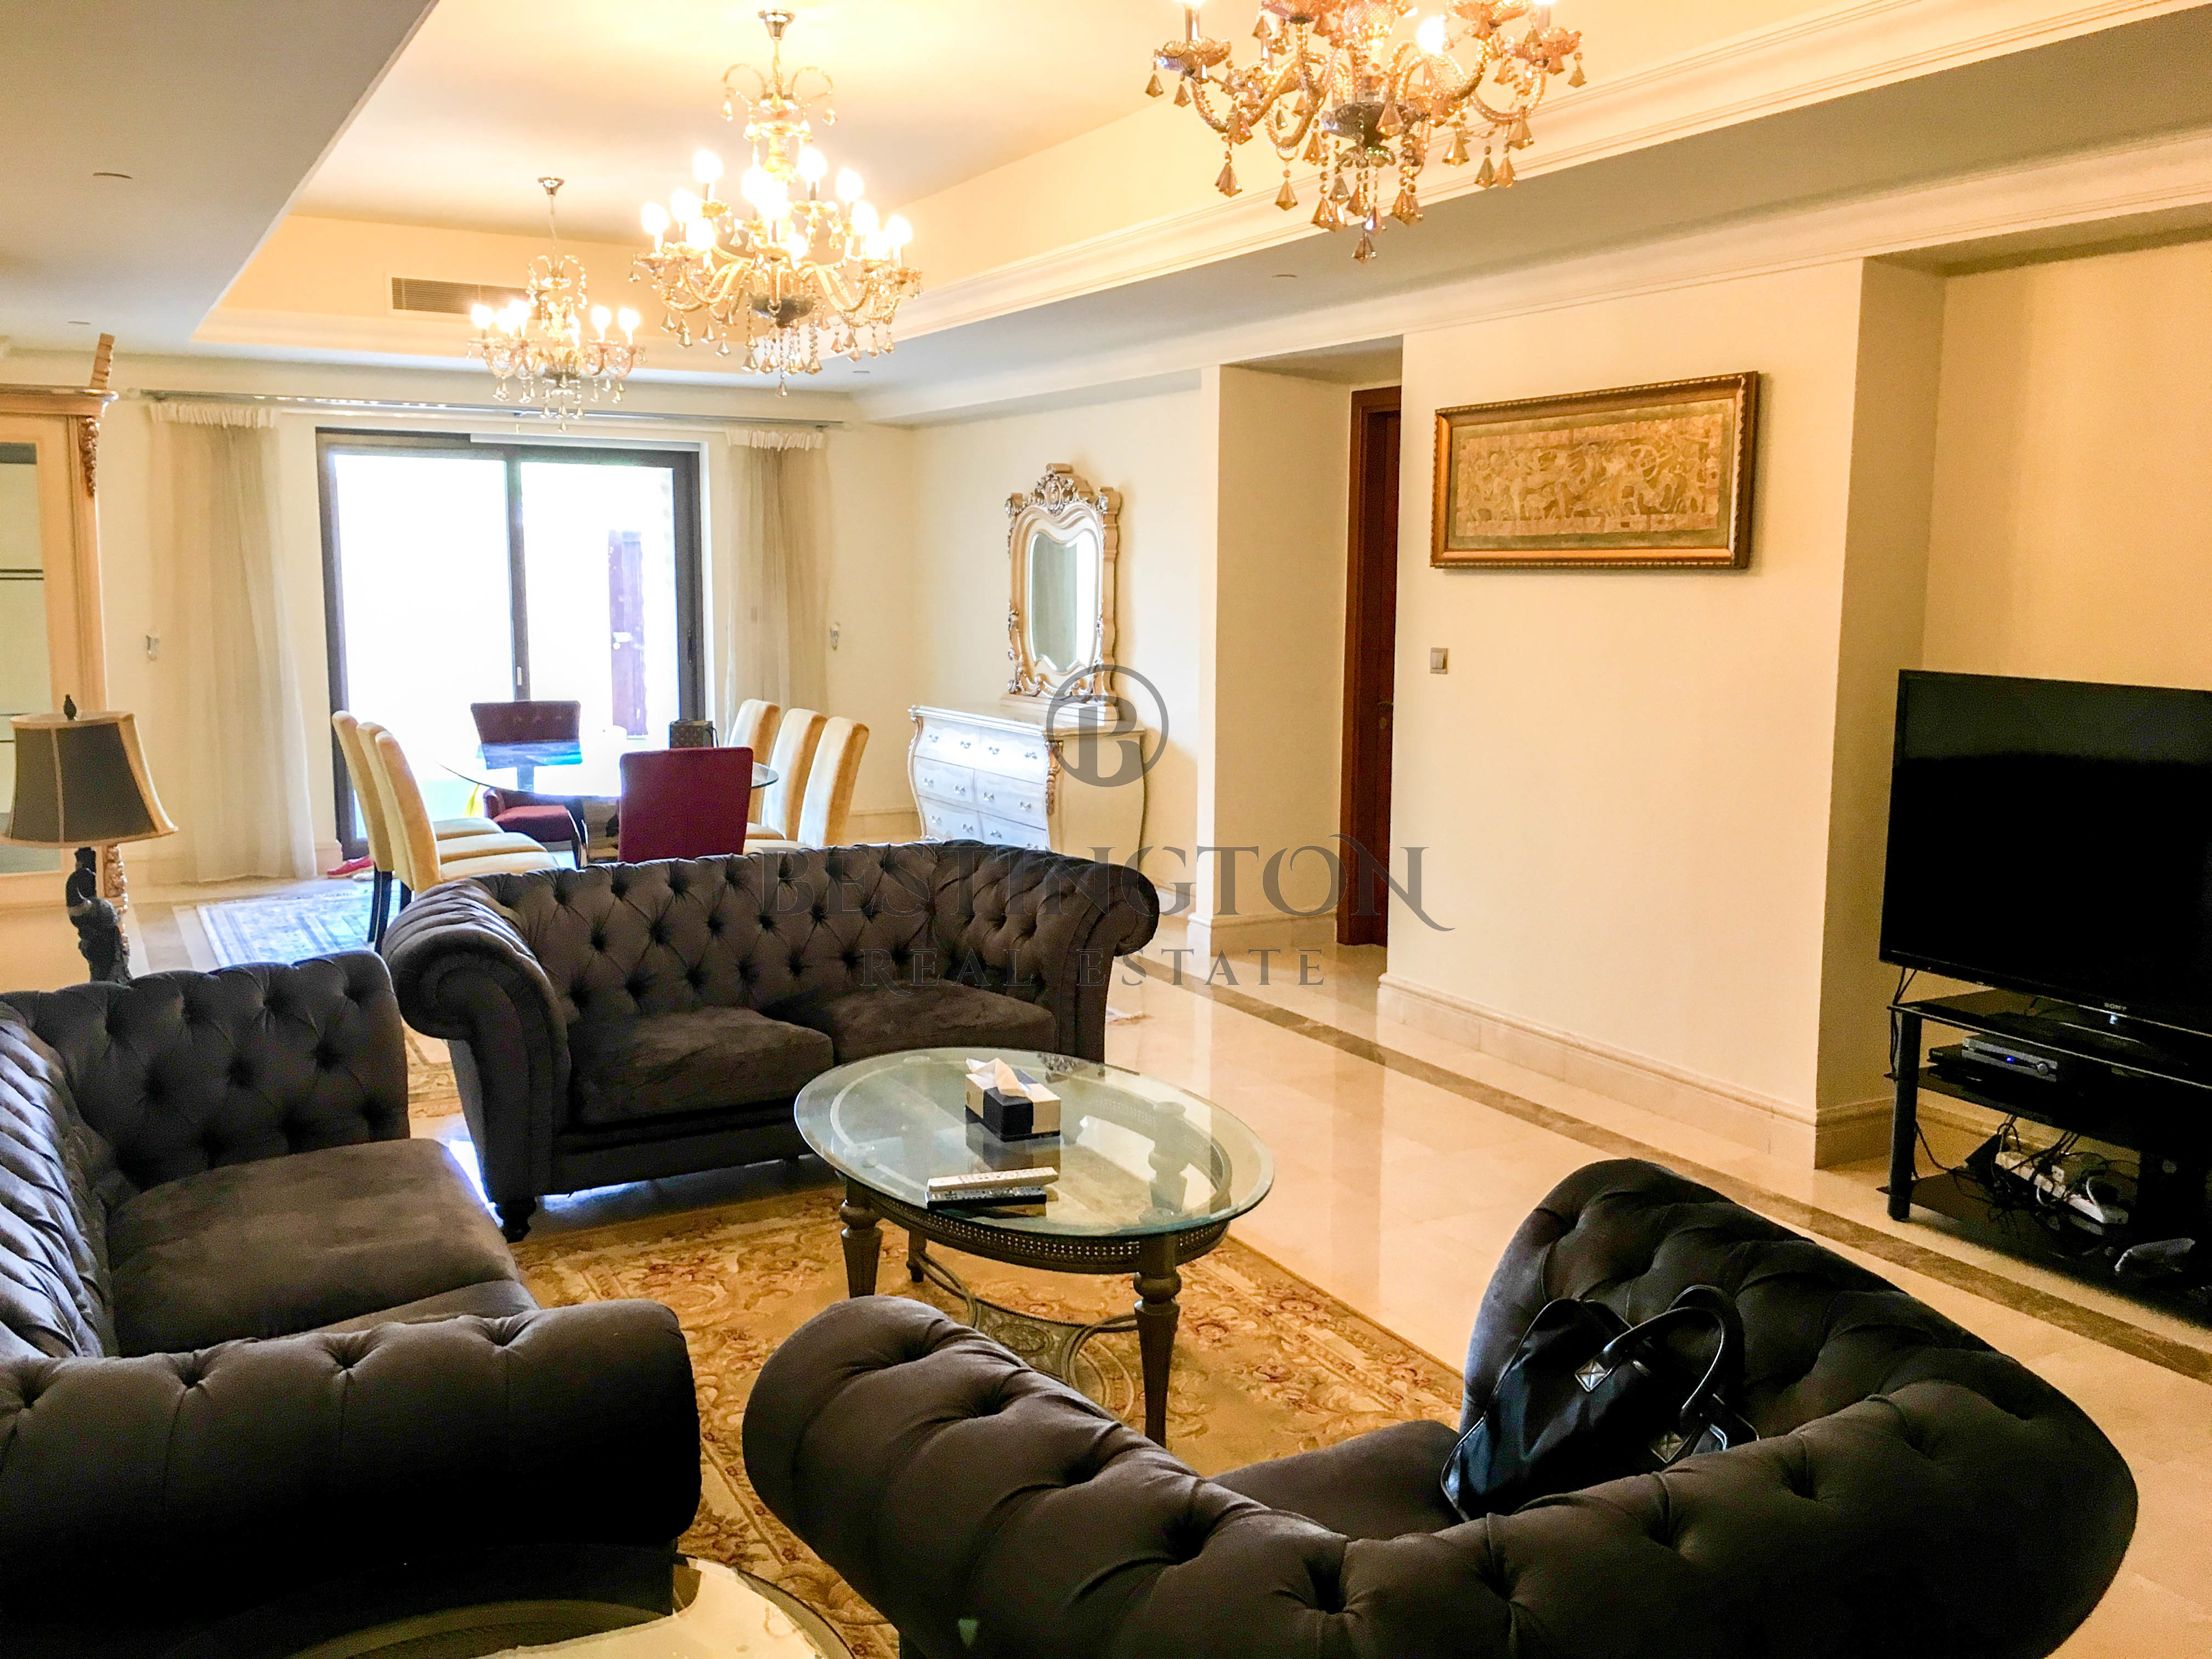 city-view-3-bdr-townhouse-furnished-vacant